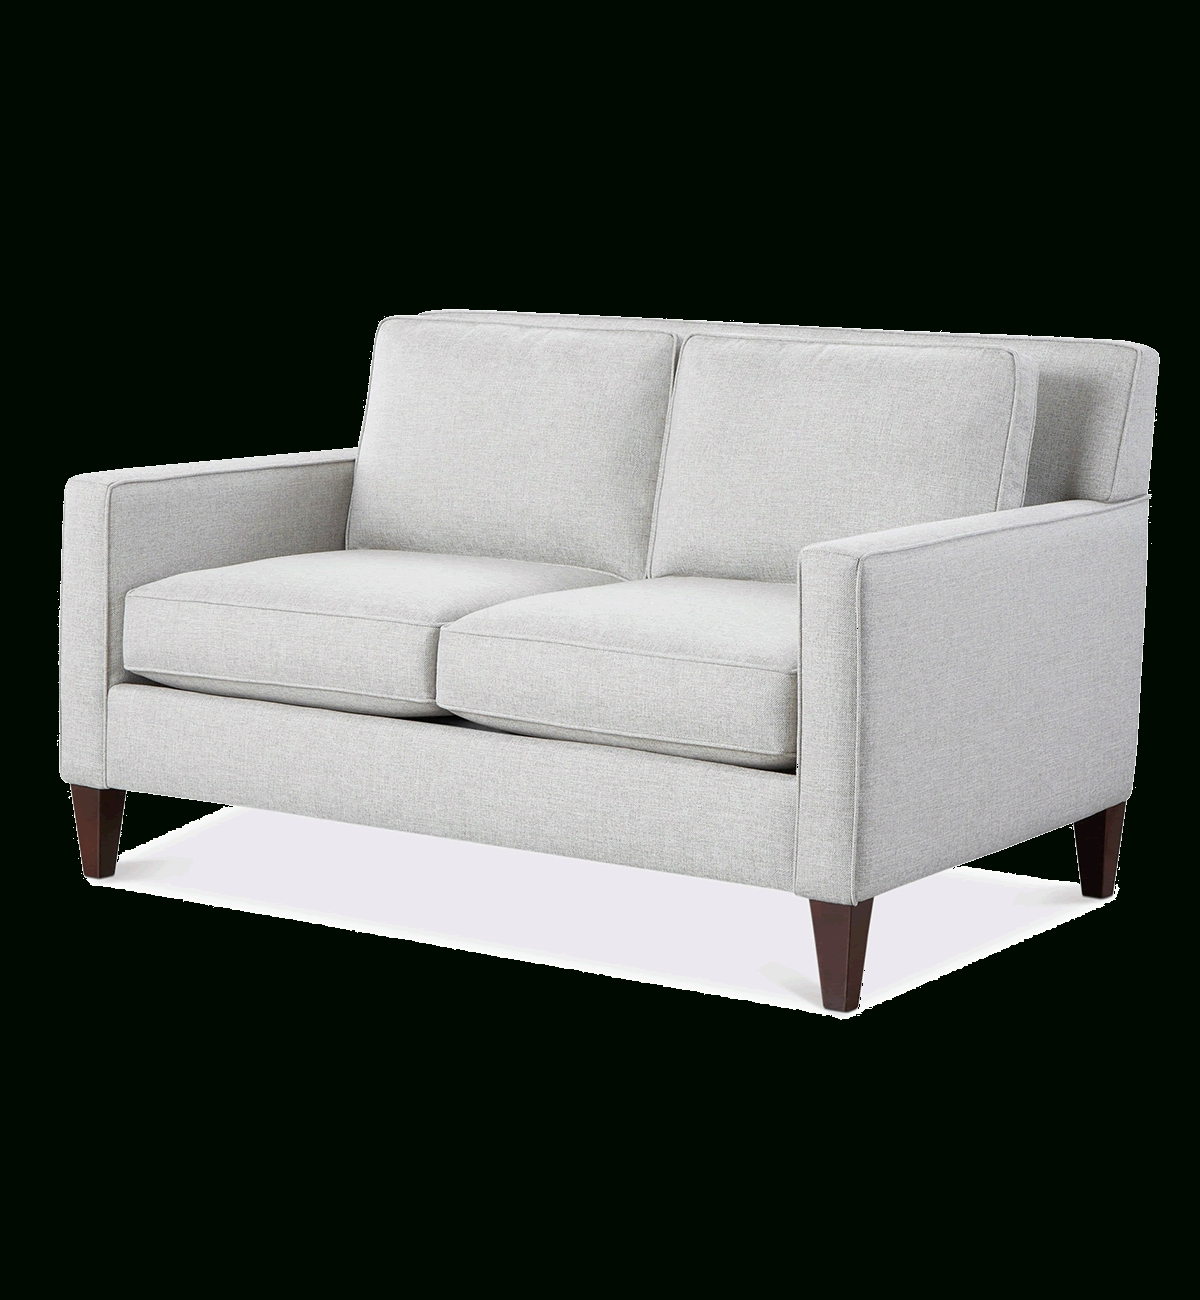 Sectional Sofas Couches And Sofas – Macy's With 2018 Macys Sectional Sofas (View 12 of 15)